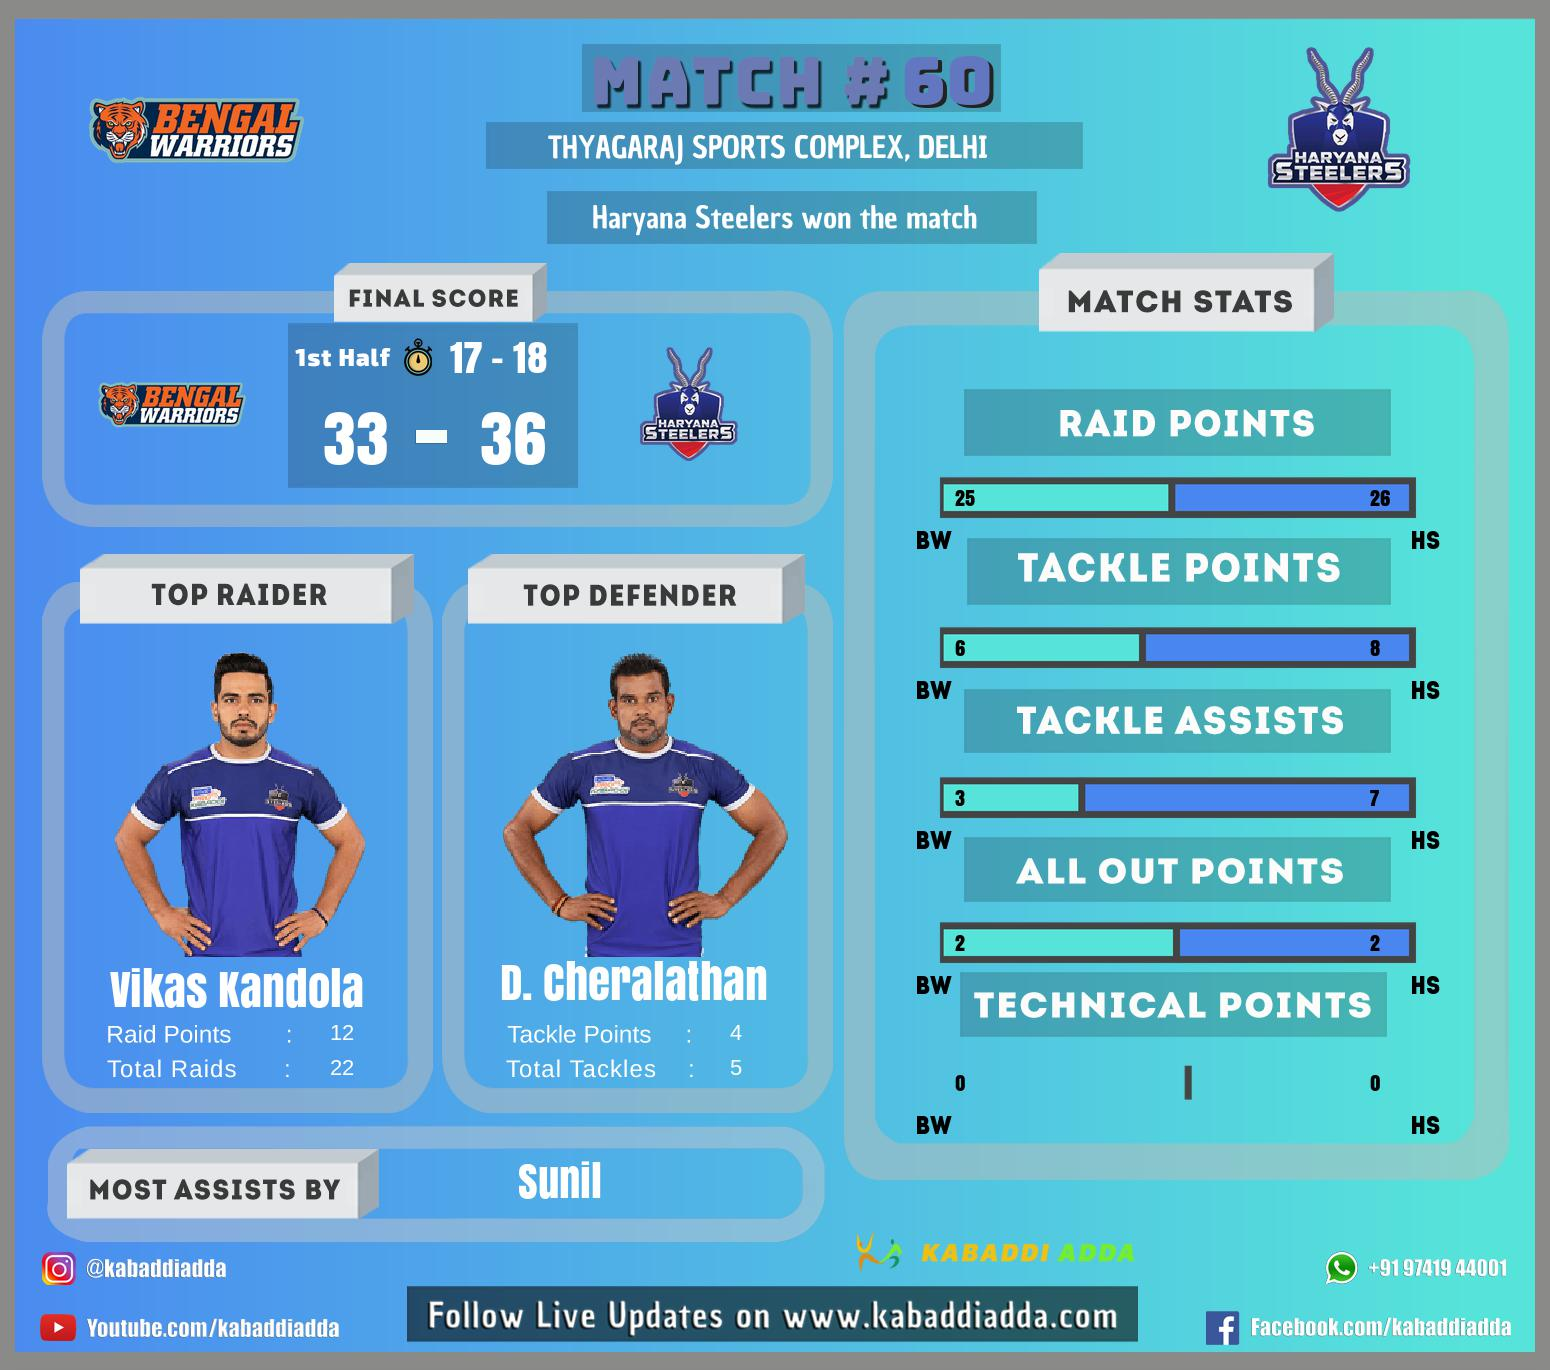 Pro kabaddi Live Bengal Warriors vs Haryana Steelers